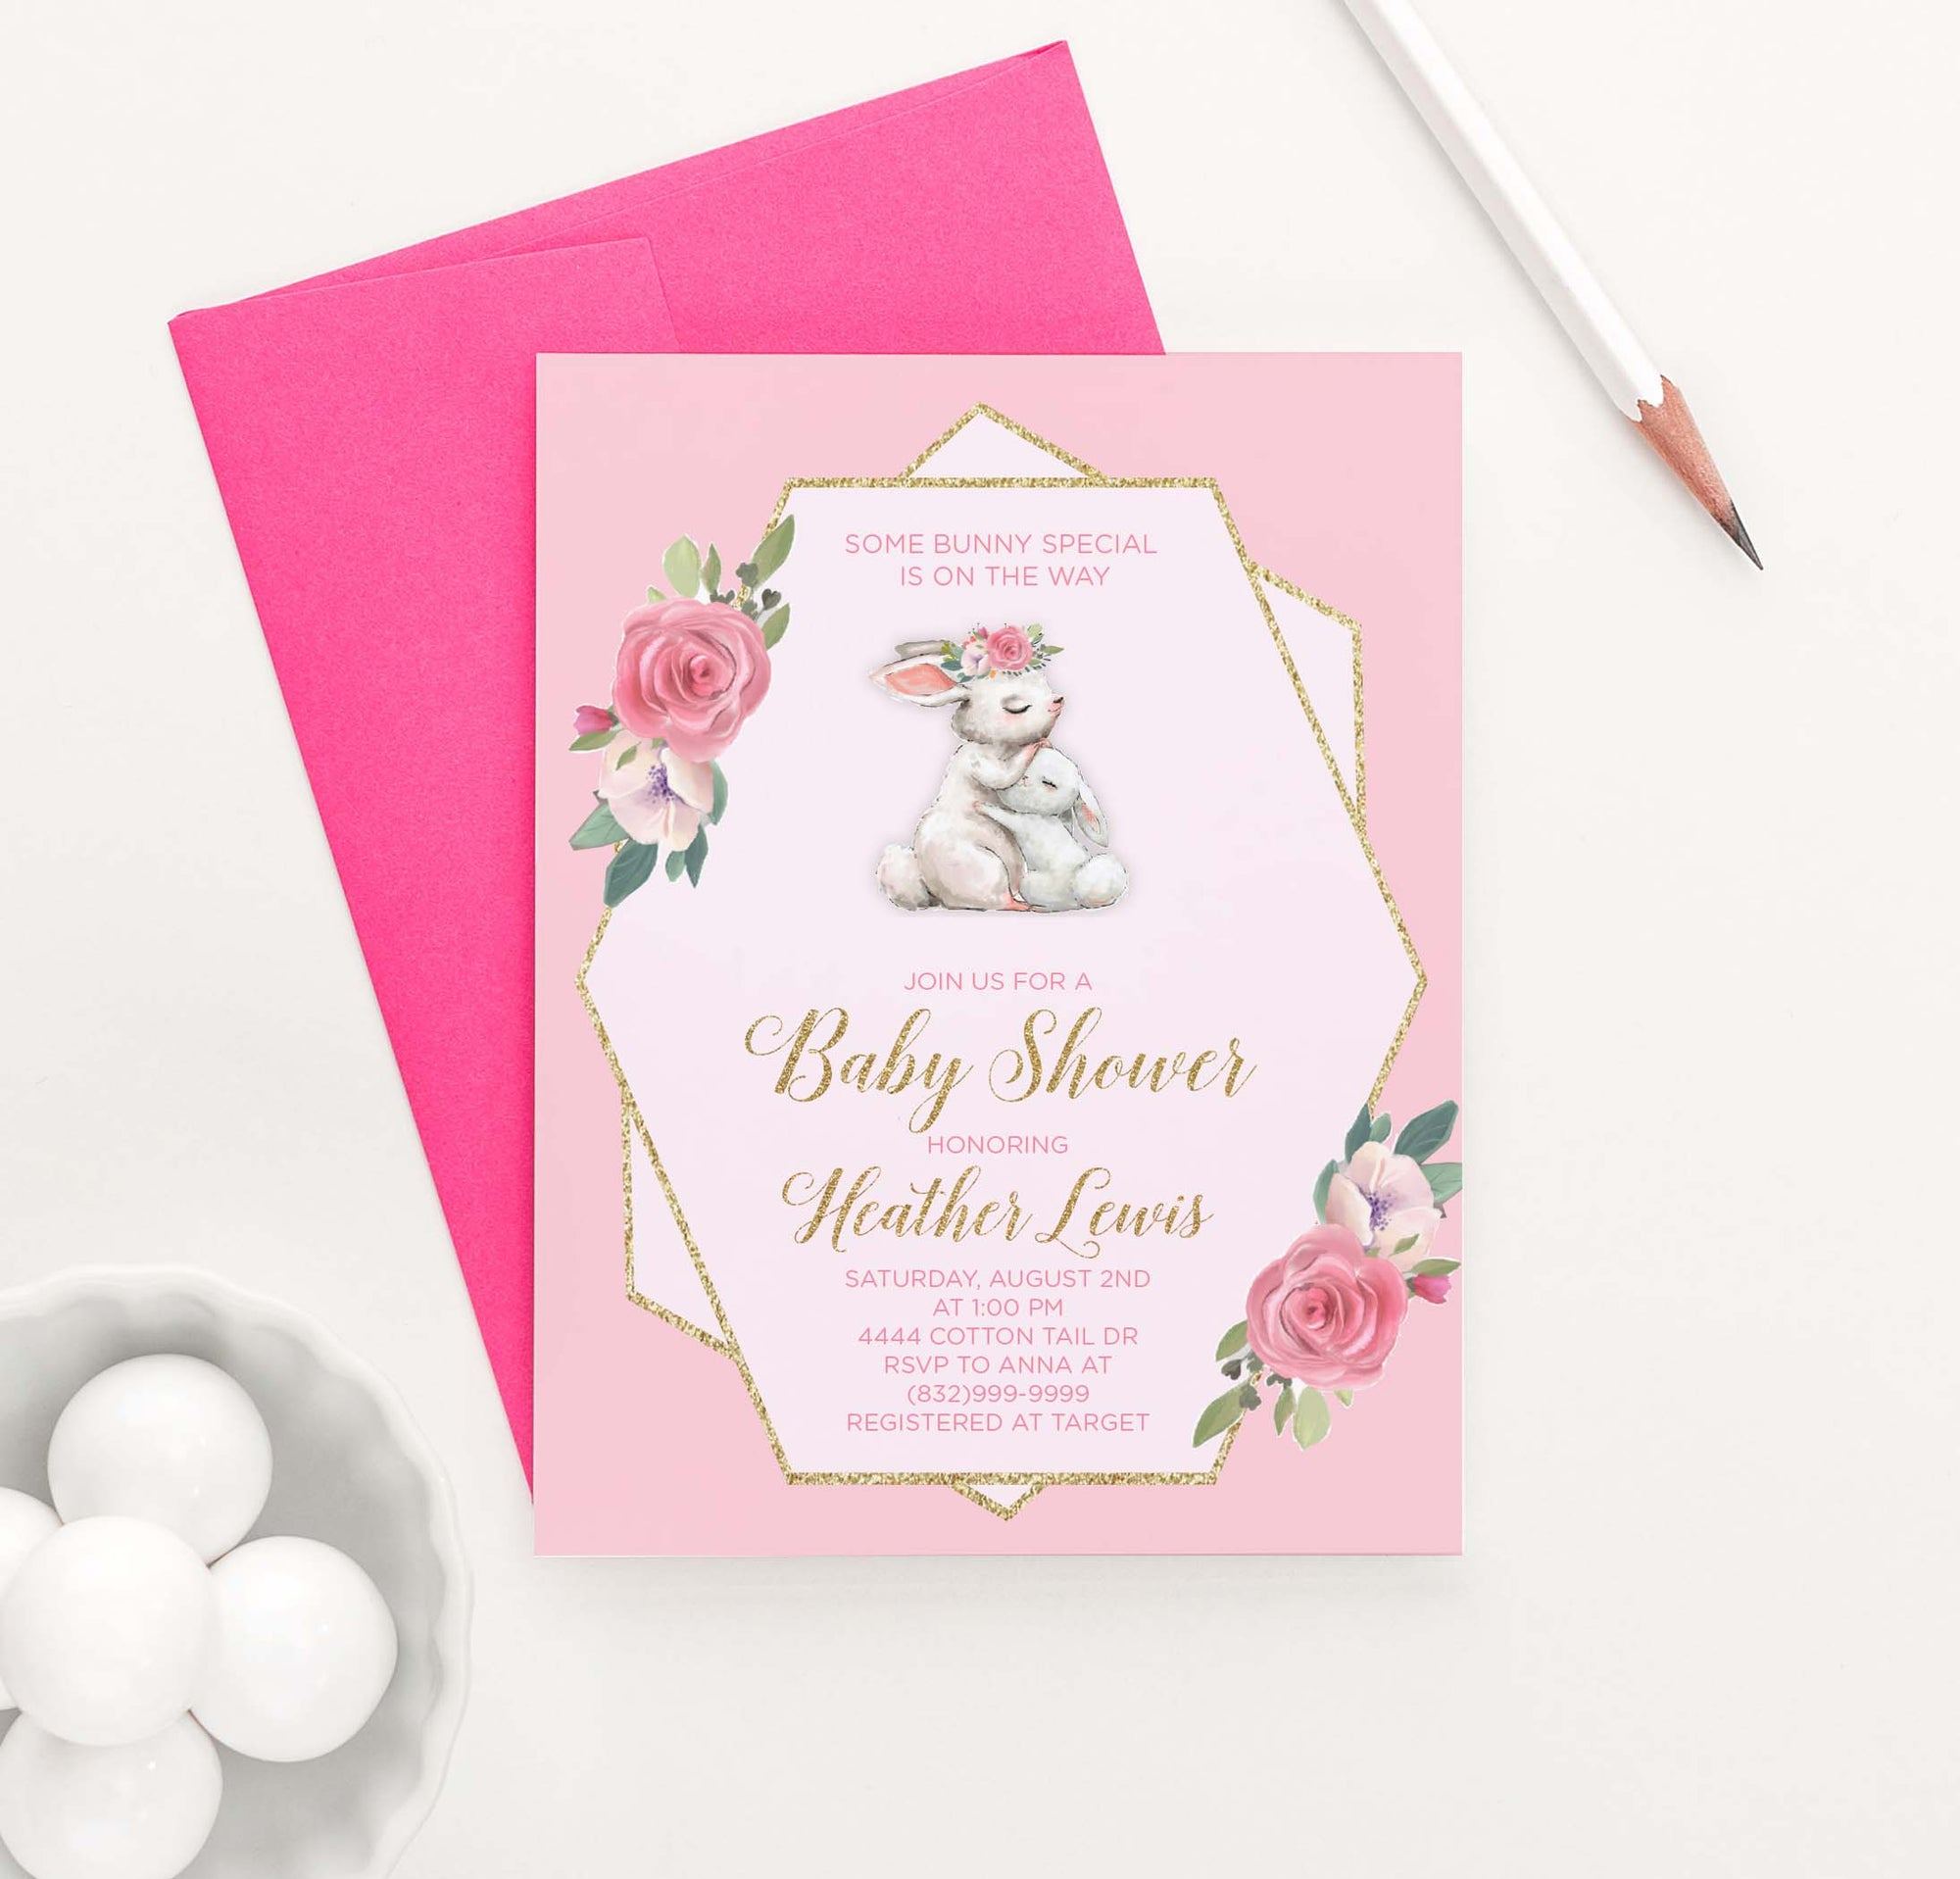 BI030 elegant bunny baby shower invitation personalzed floral rabbit gold glitter 1